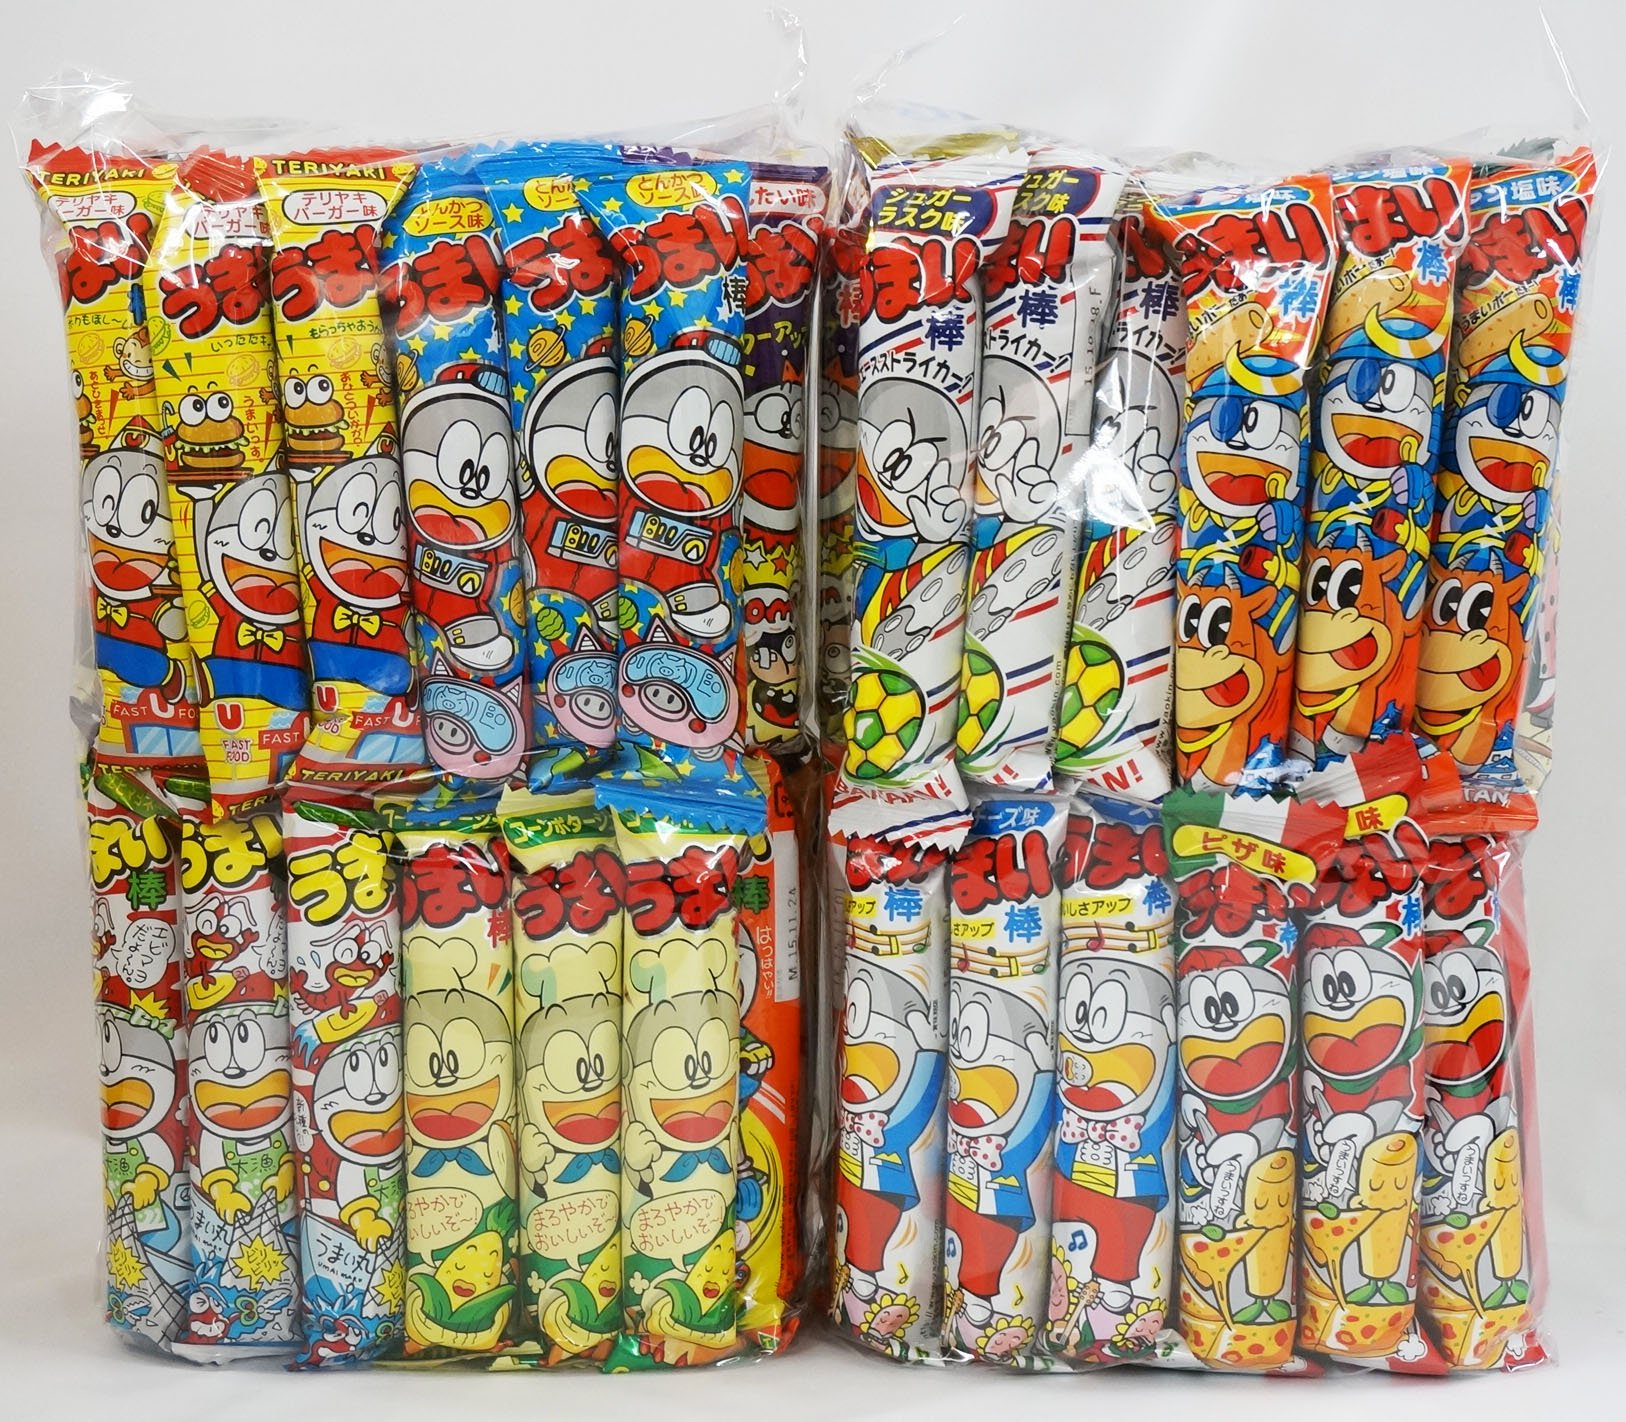 "Assorted Japanese Junk Food Snack ""Umaibo"" 100 Packs of 11 Types (2 Package Set of 50 Packs)"